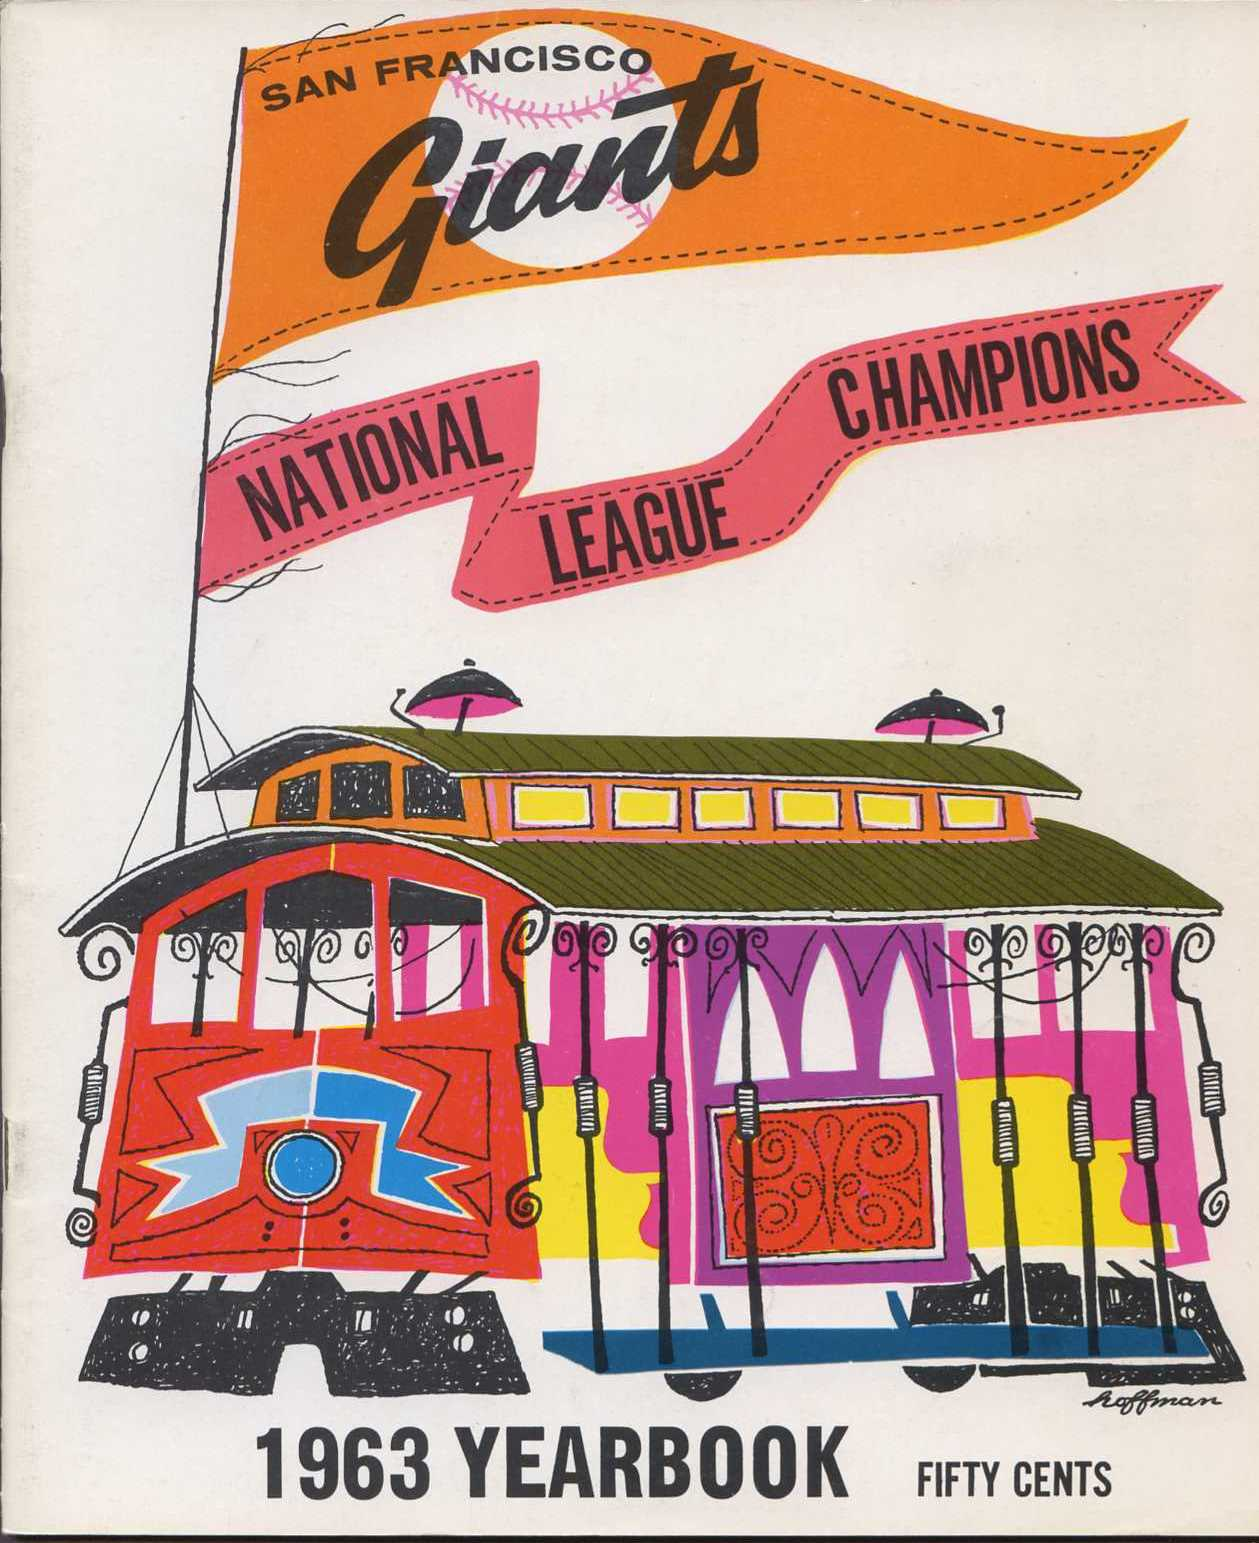 1963 San Francisco Giants Yearbook - Trolley car with Giants penn